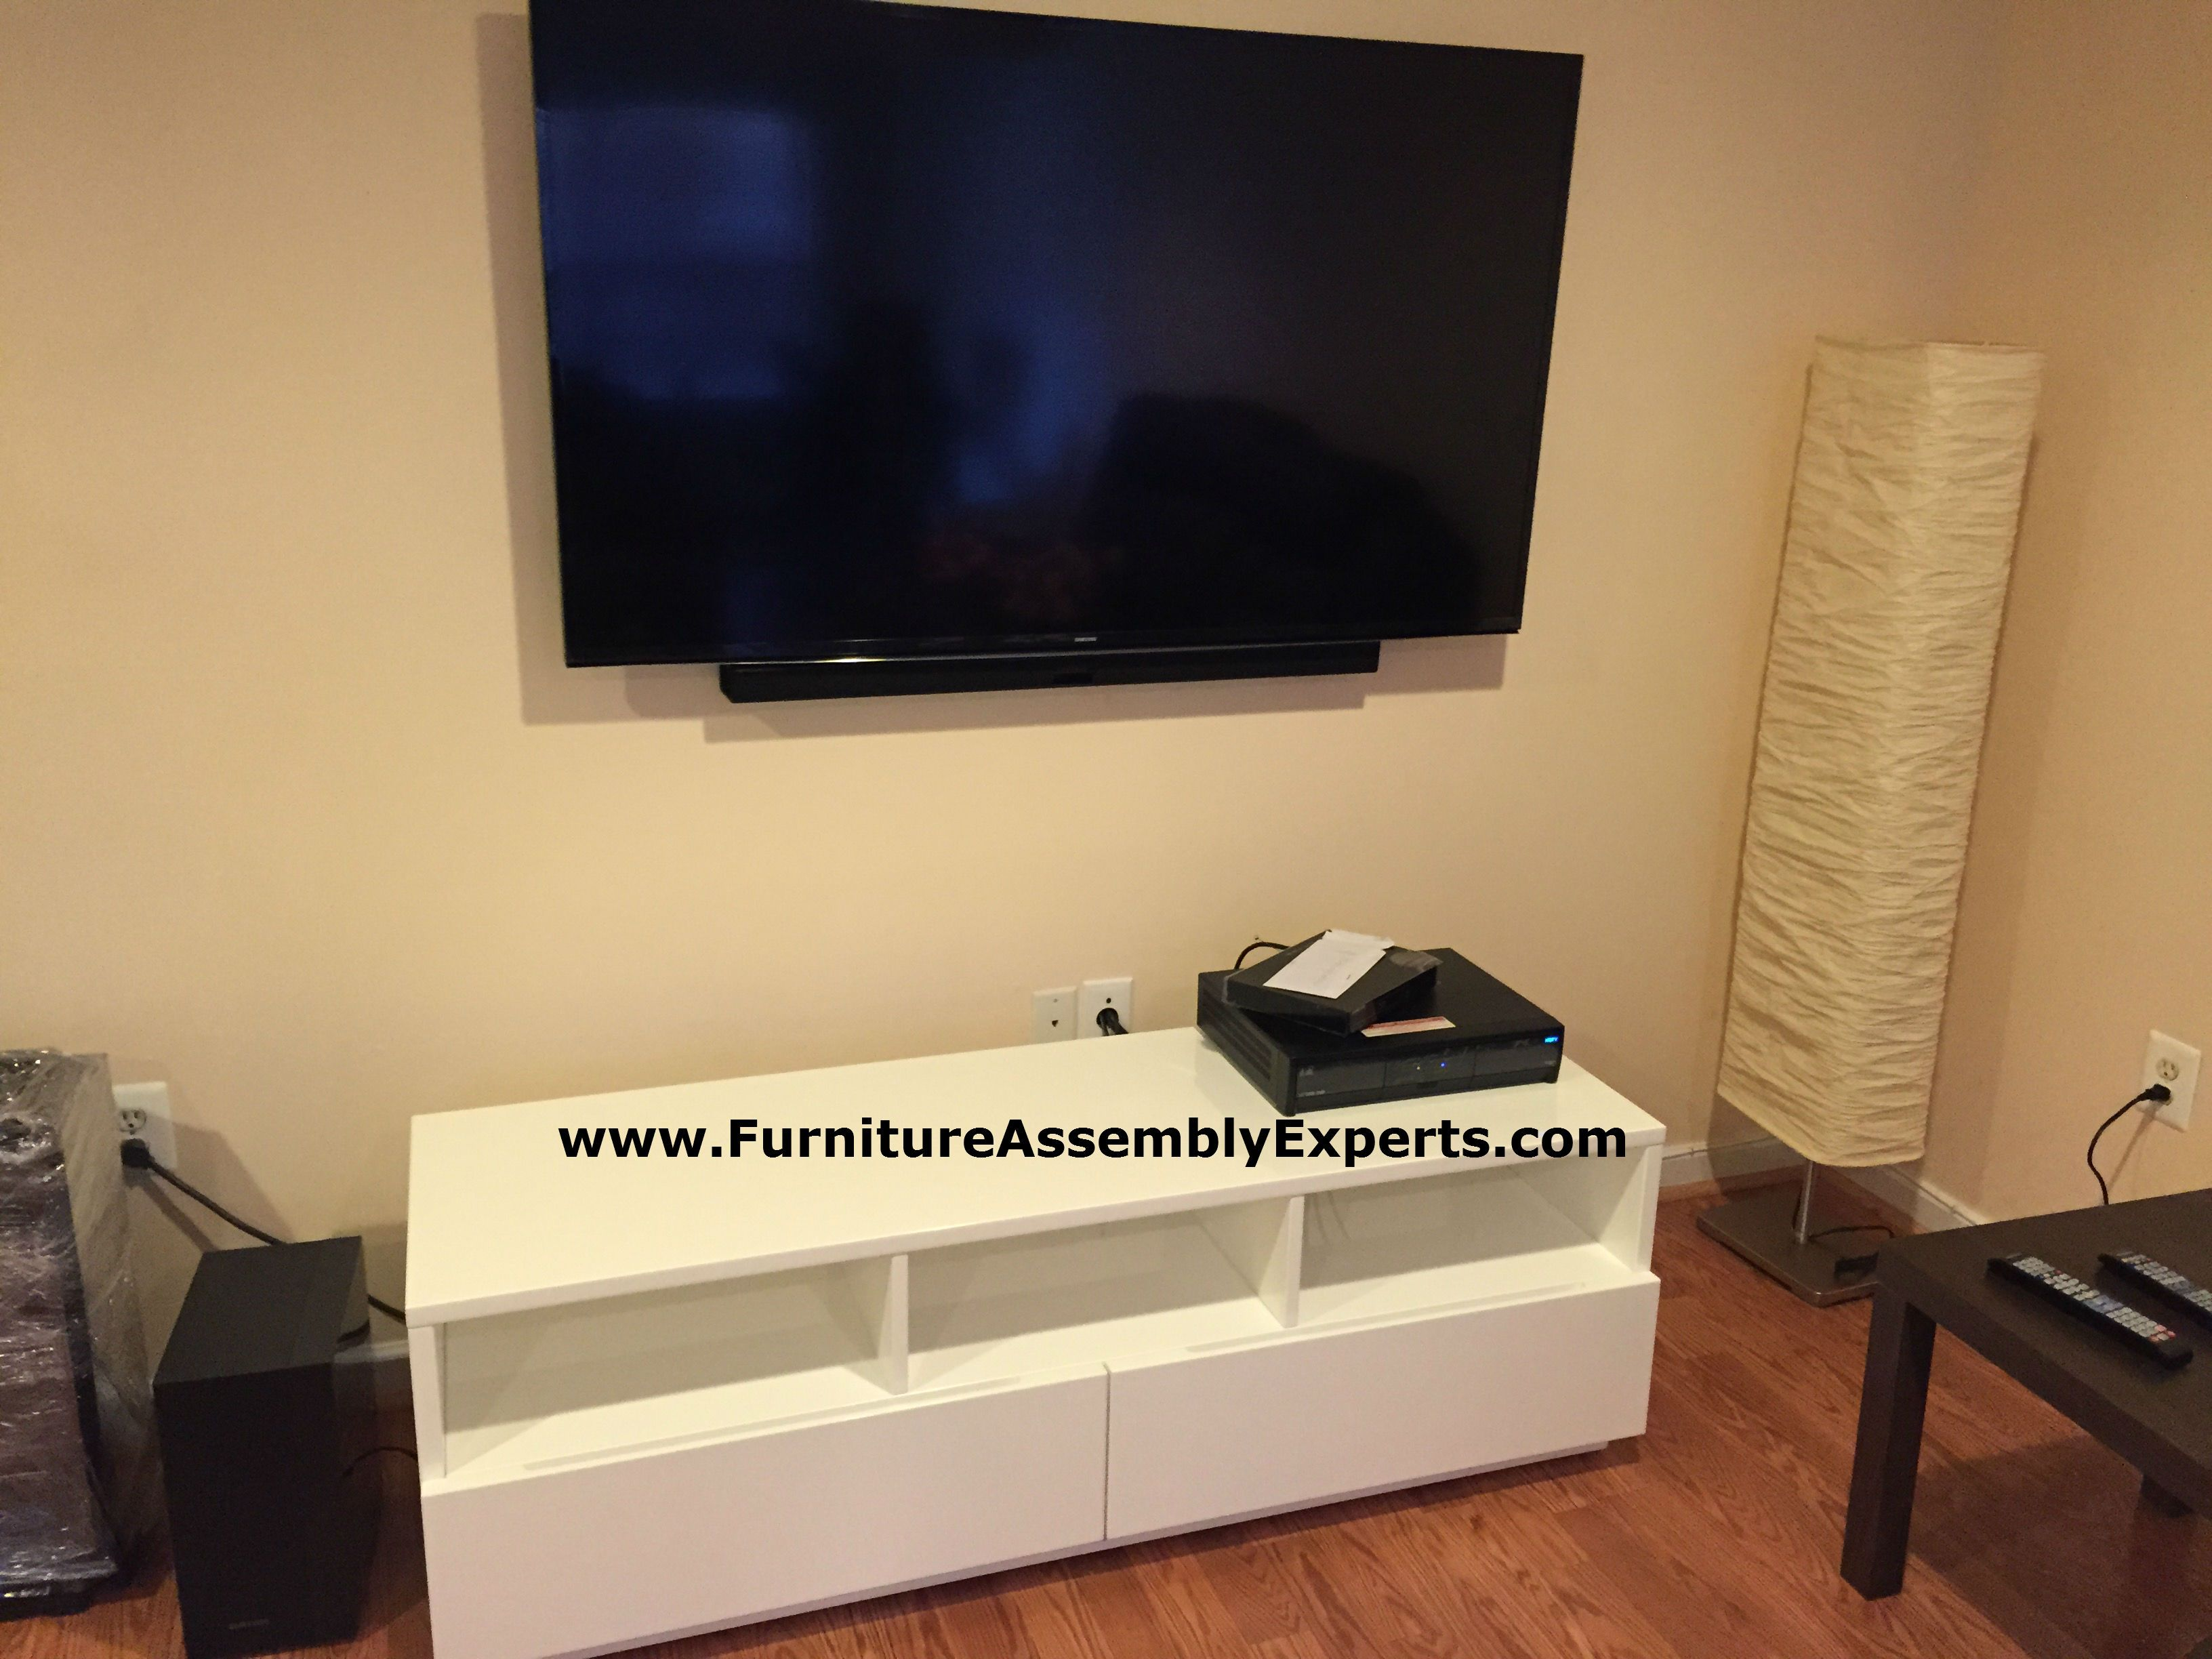 TV wall mounted in arlington VA by Furniture Assembly Experts LLC ...